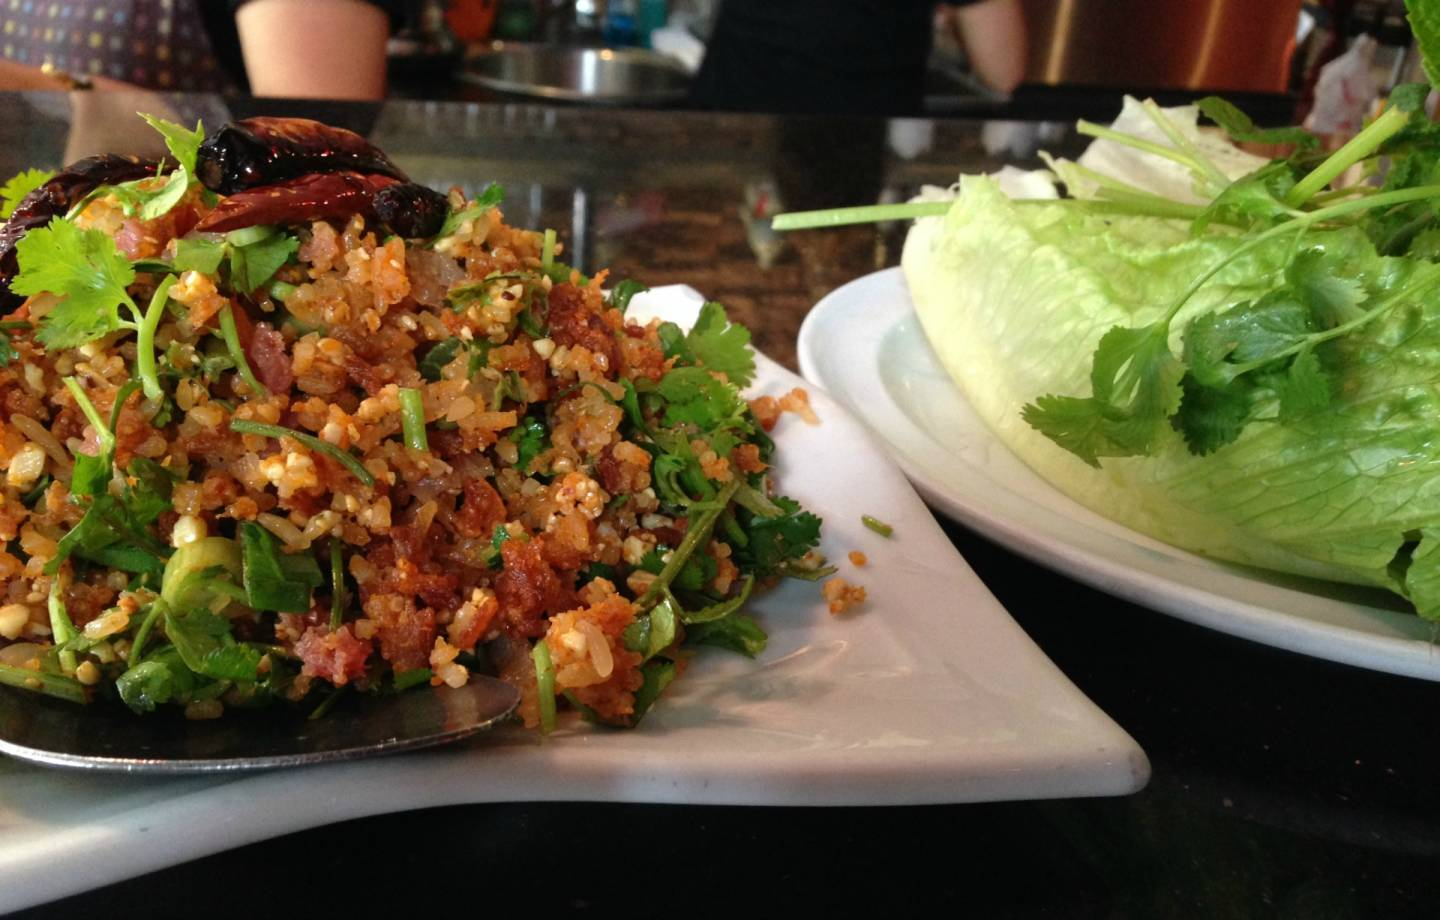 Bay Area Bites Guide to 9 Favorite Meal-Sized Salad Spots In Berkeley and Oakland